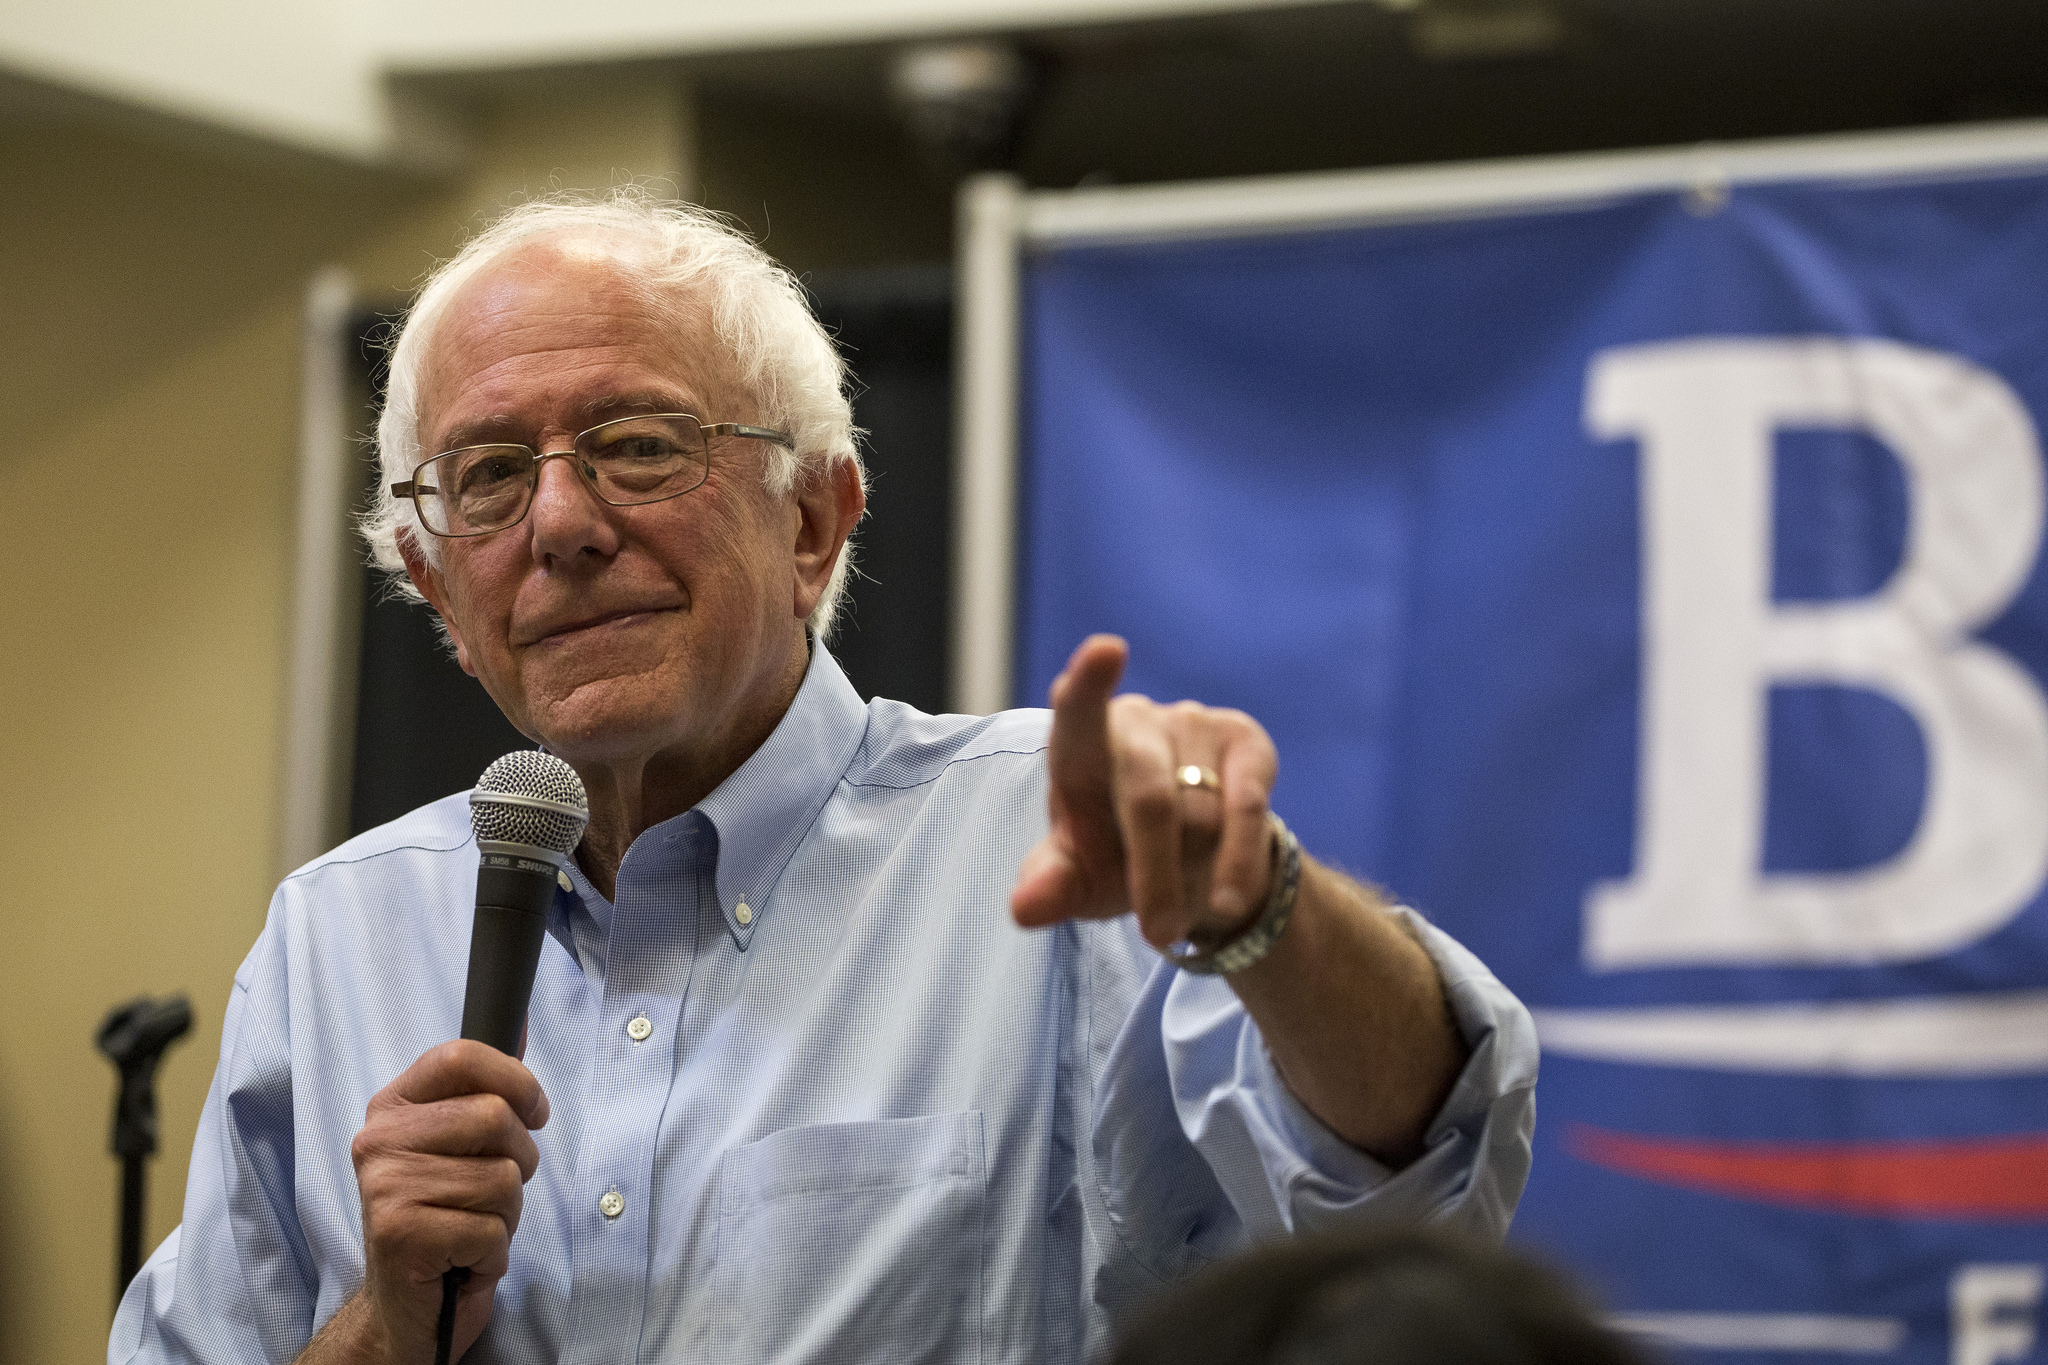 Bernie Sanders Has America Talking About Denmark. That's a Good Thing.